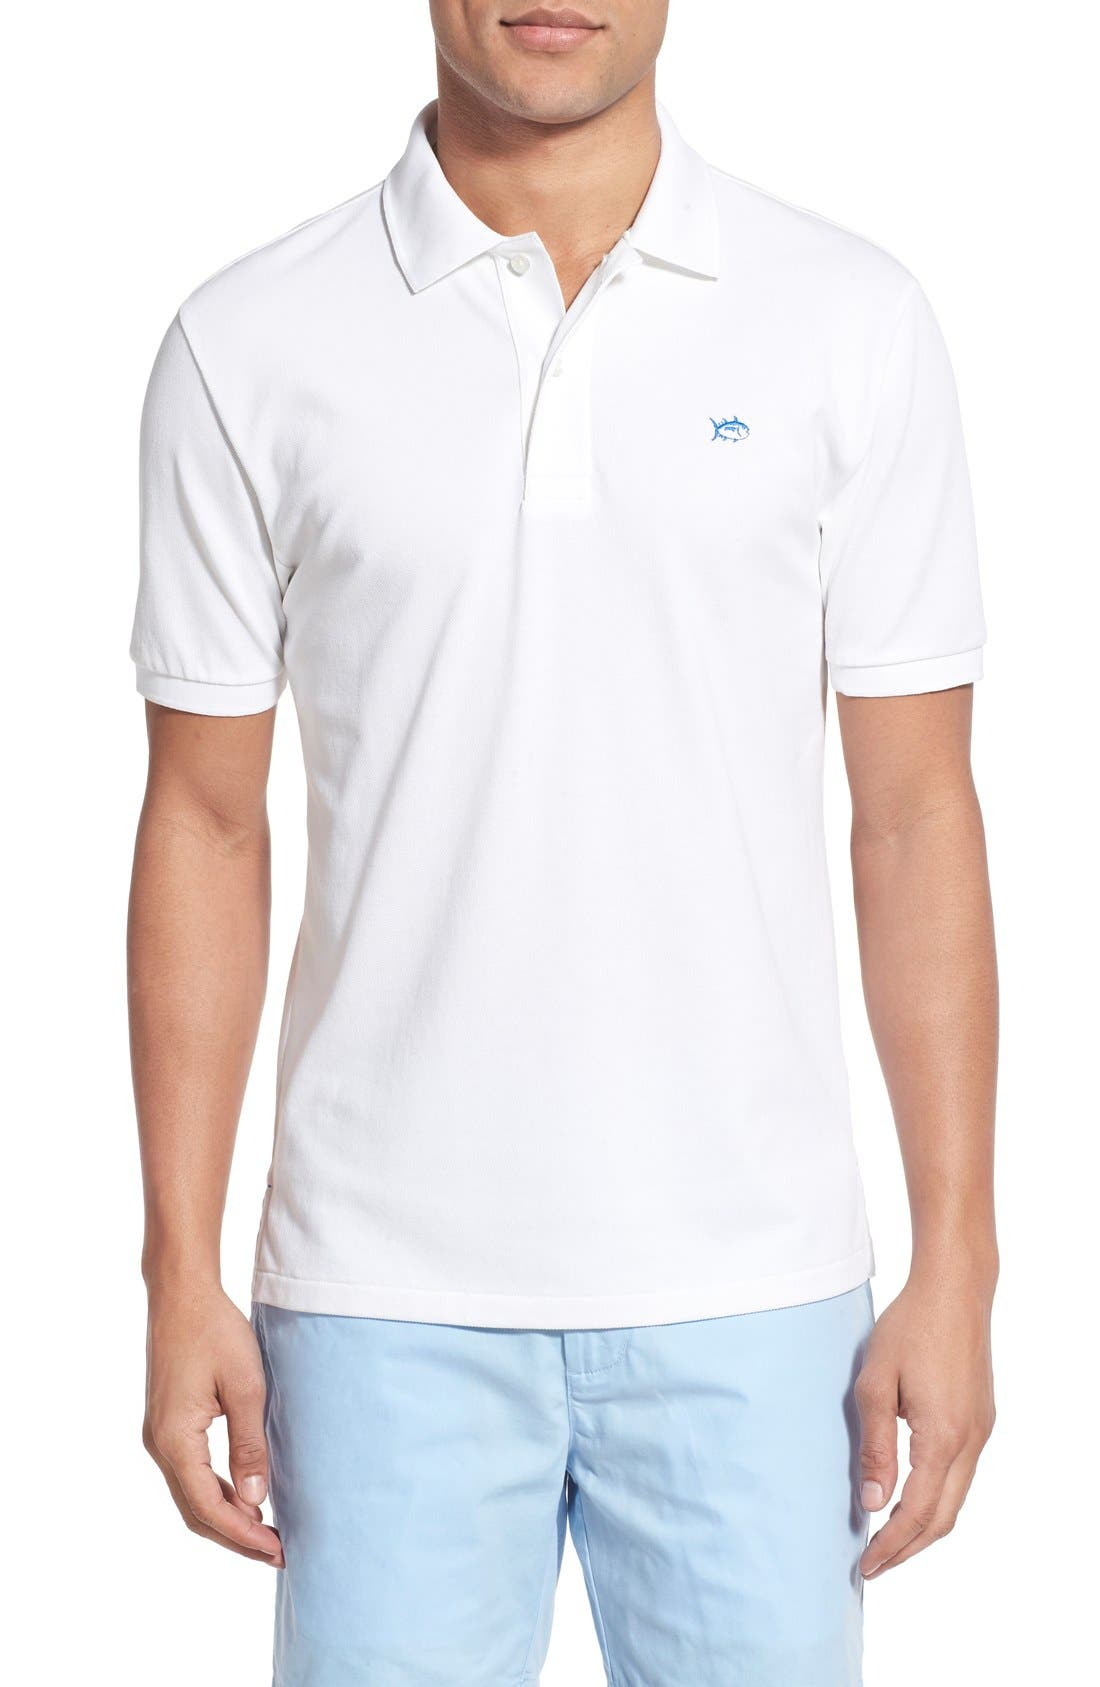 Southern Tide 'Skipjack Micro Piqué' Stretch Cotton Polo